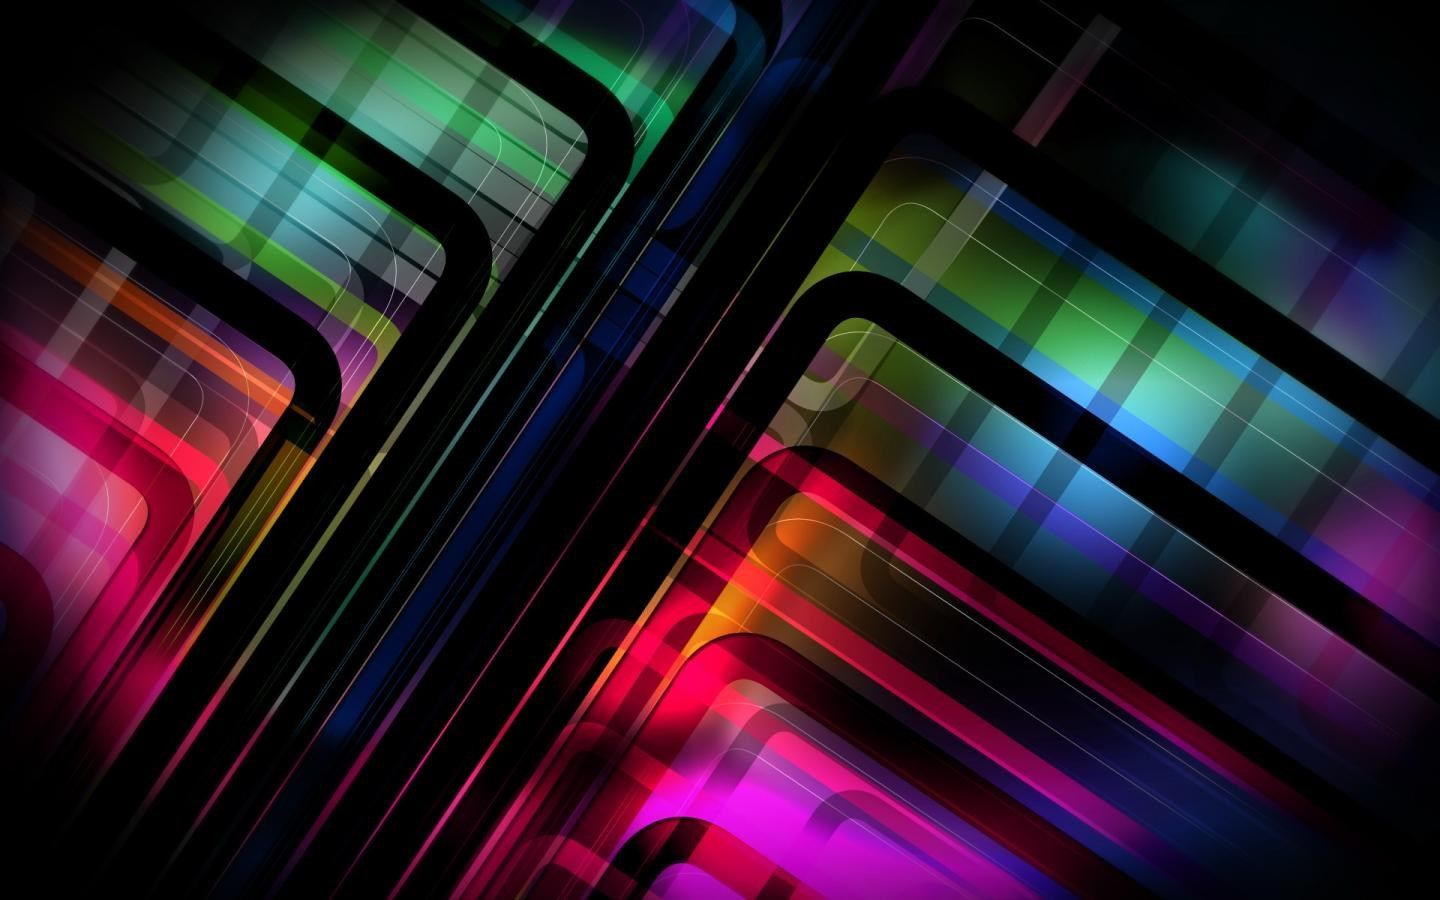 more beautiful free wallpaper hd 3d abstract in high resolution